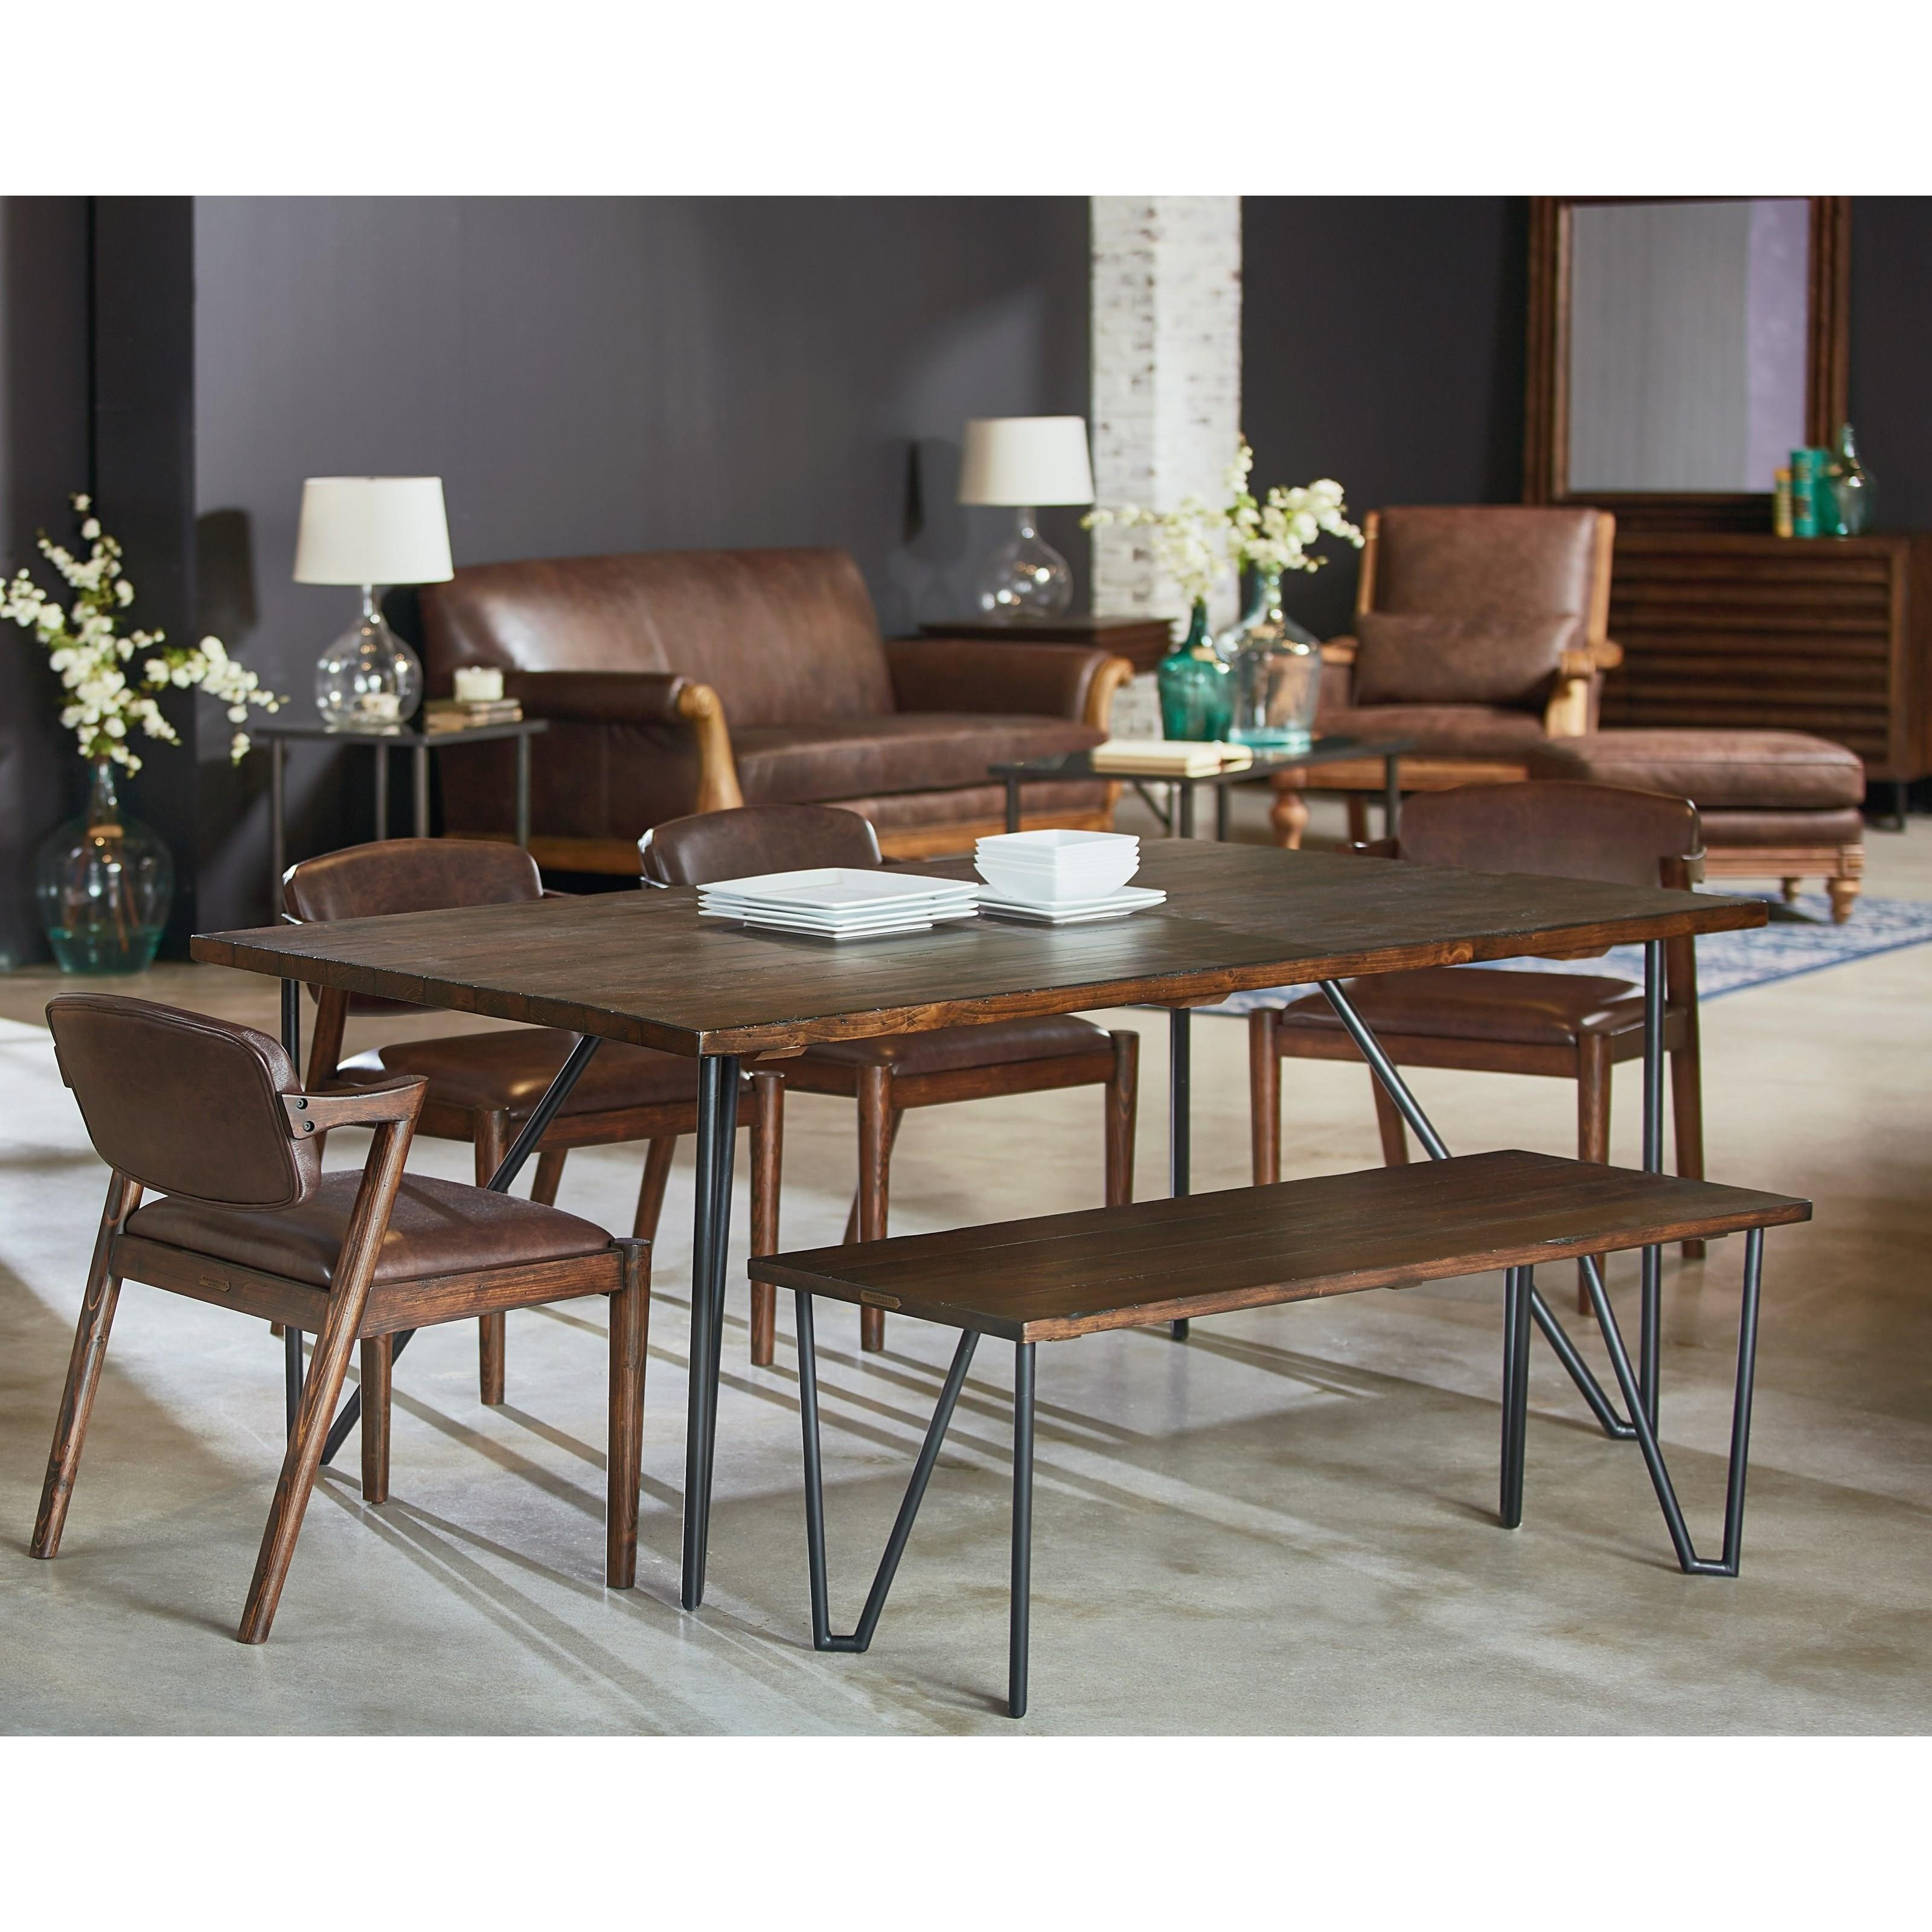 Magnolia home by joanna gaines boho 8 39 hairpin dining for Magnolia dining table